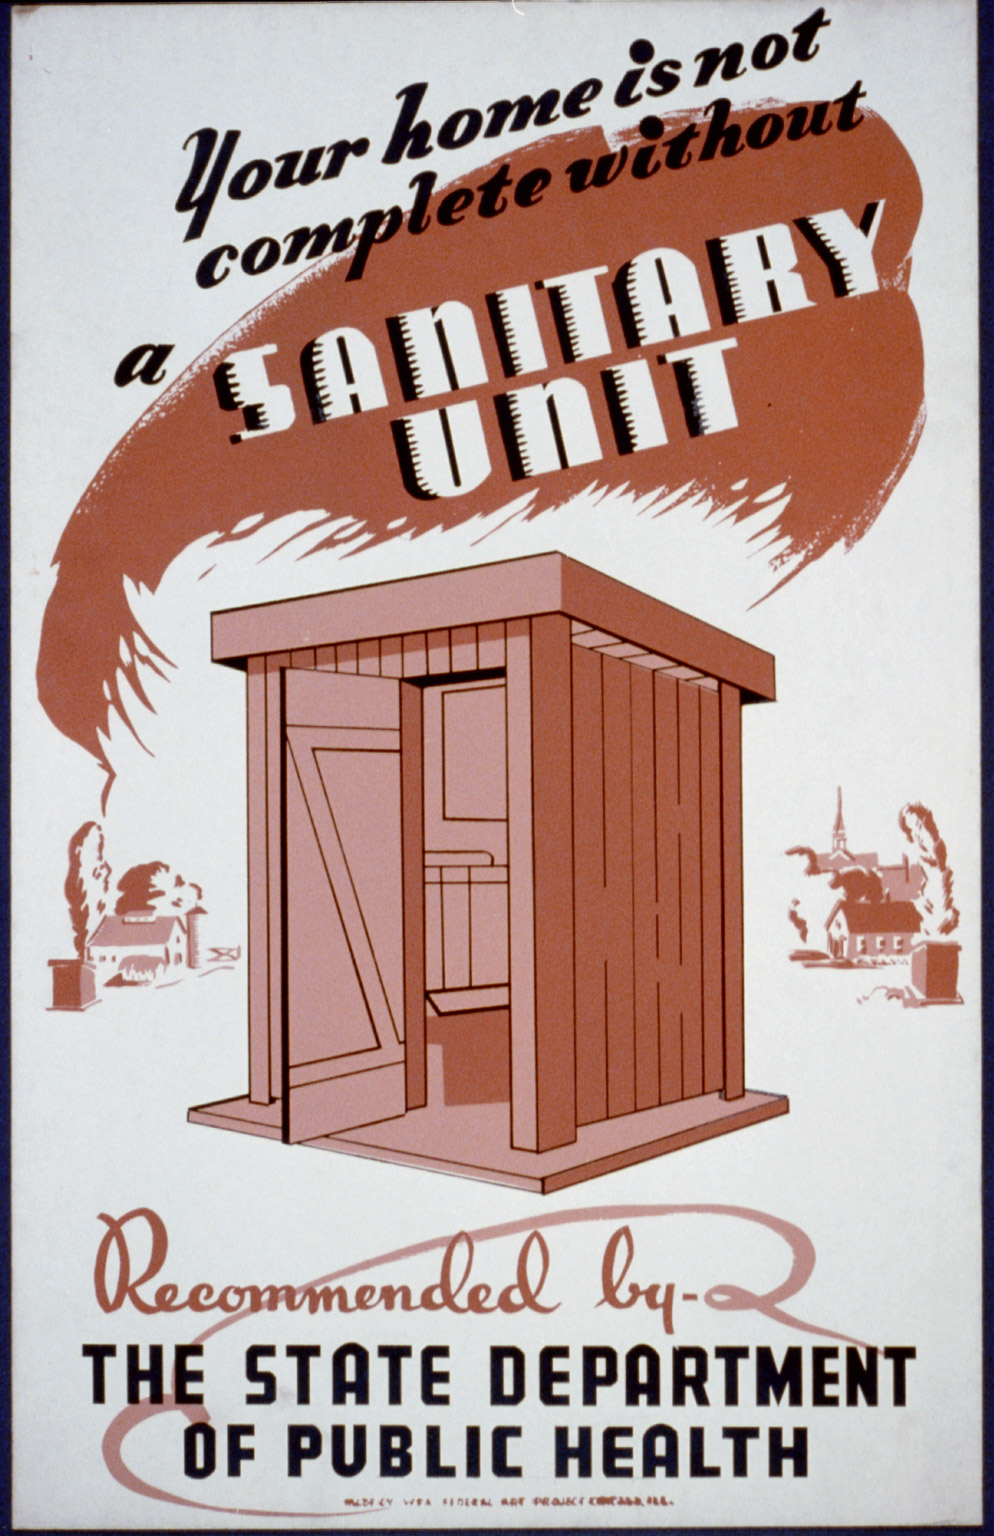 Poster showing an outhouse in a picturesque, small town setting: Your home is not complete without a sanitary unit, recommended by the State Department of Public Health. Created between 1936 and 1941.